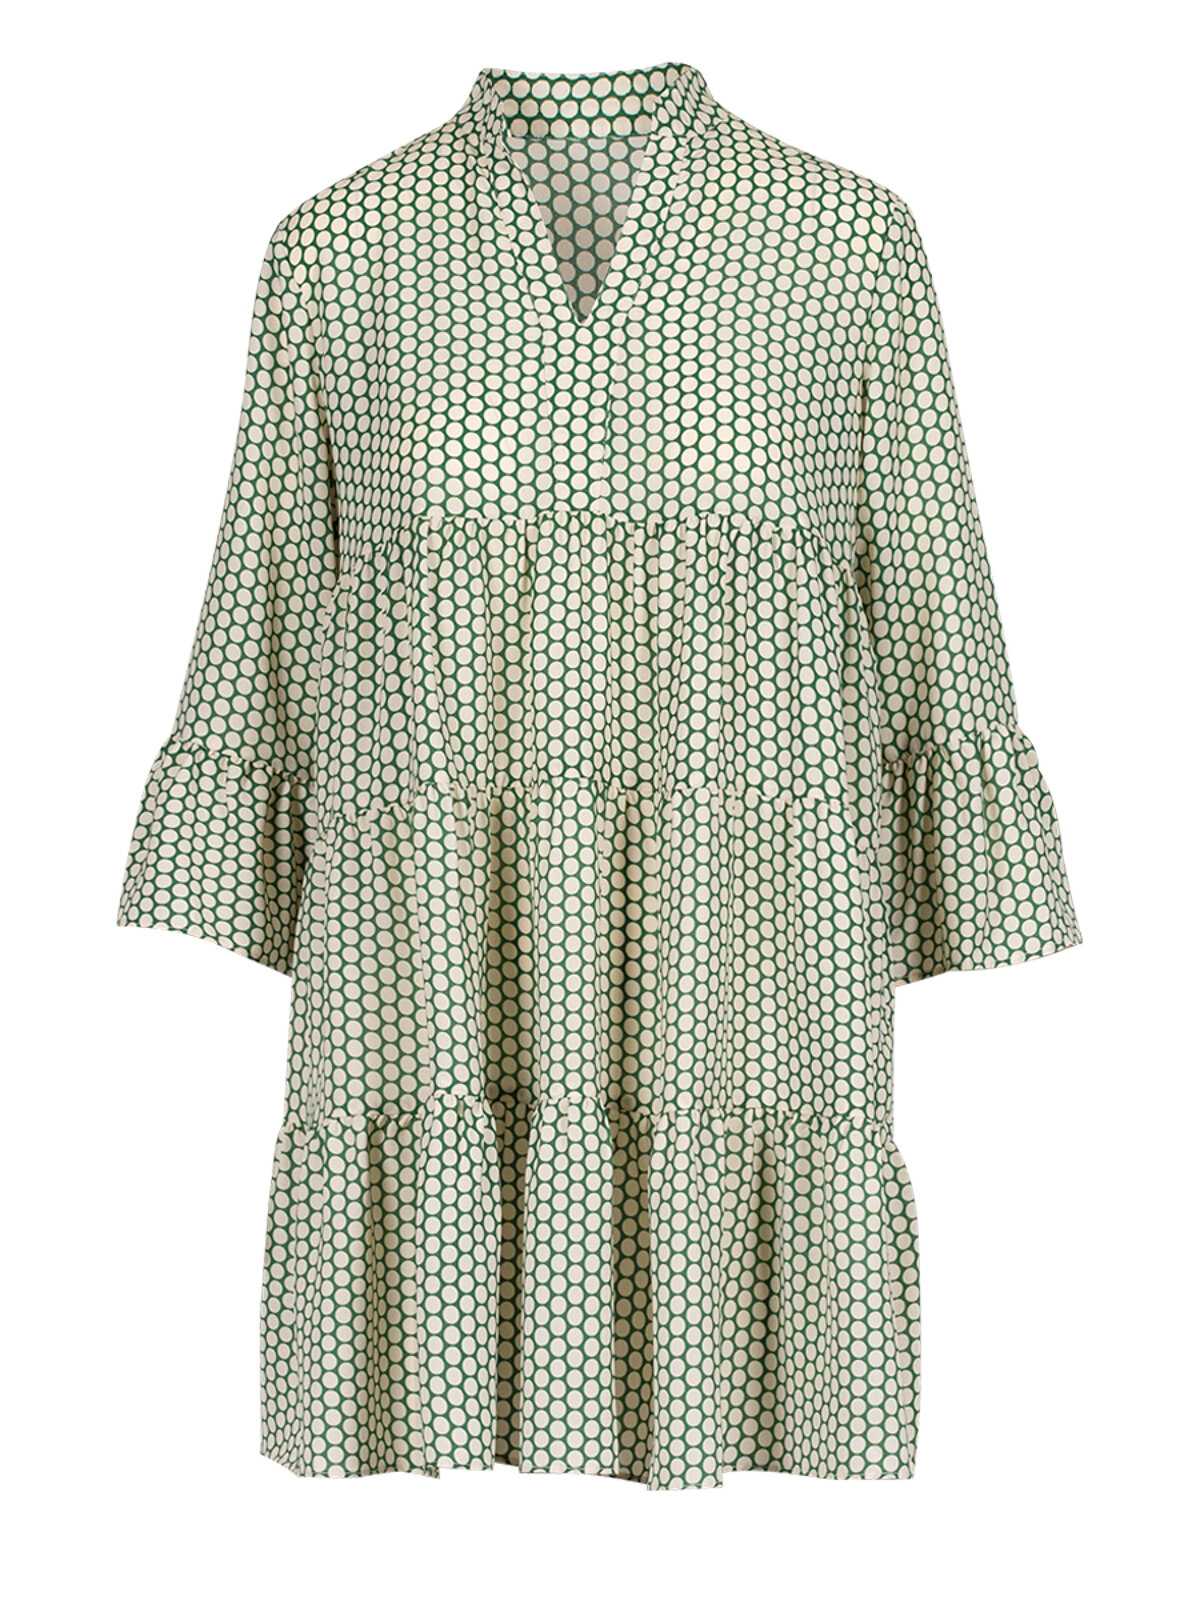 Duilia Green Dots Dress - Anonyme Designers